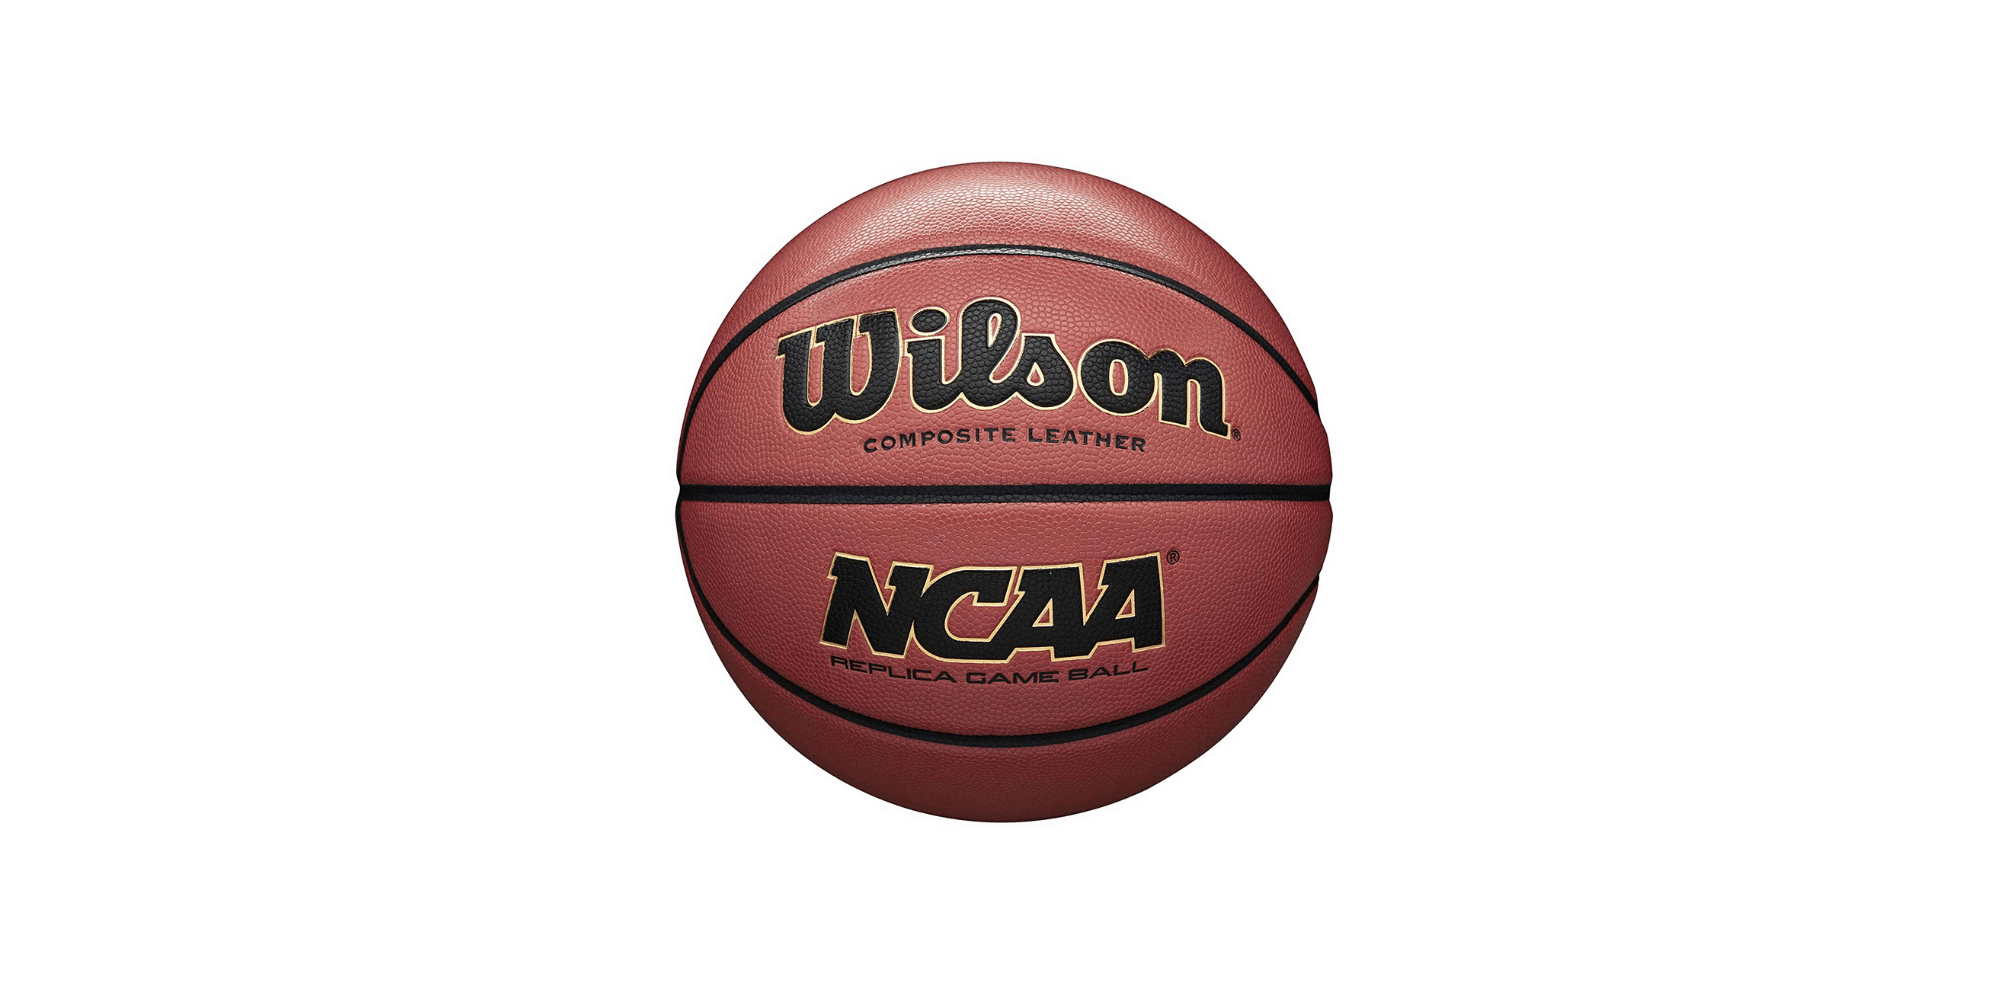 featured image for wilson ncaa replica basketball review